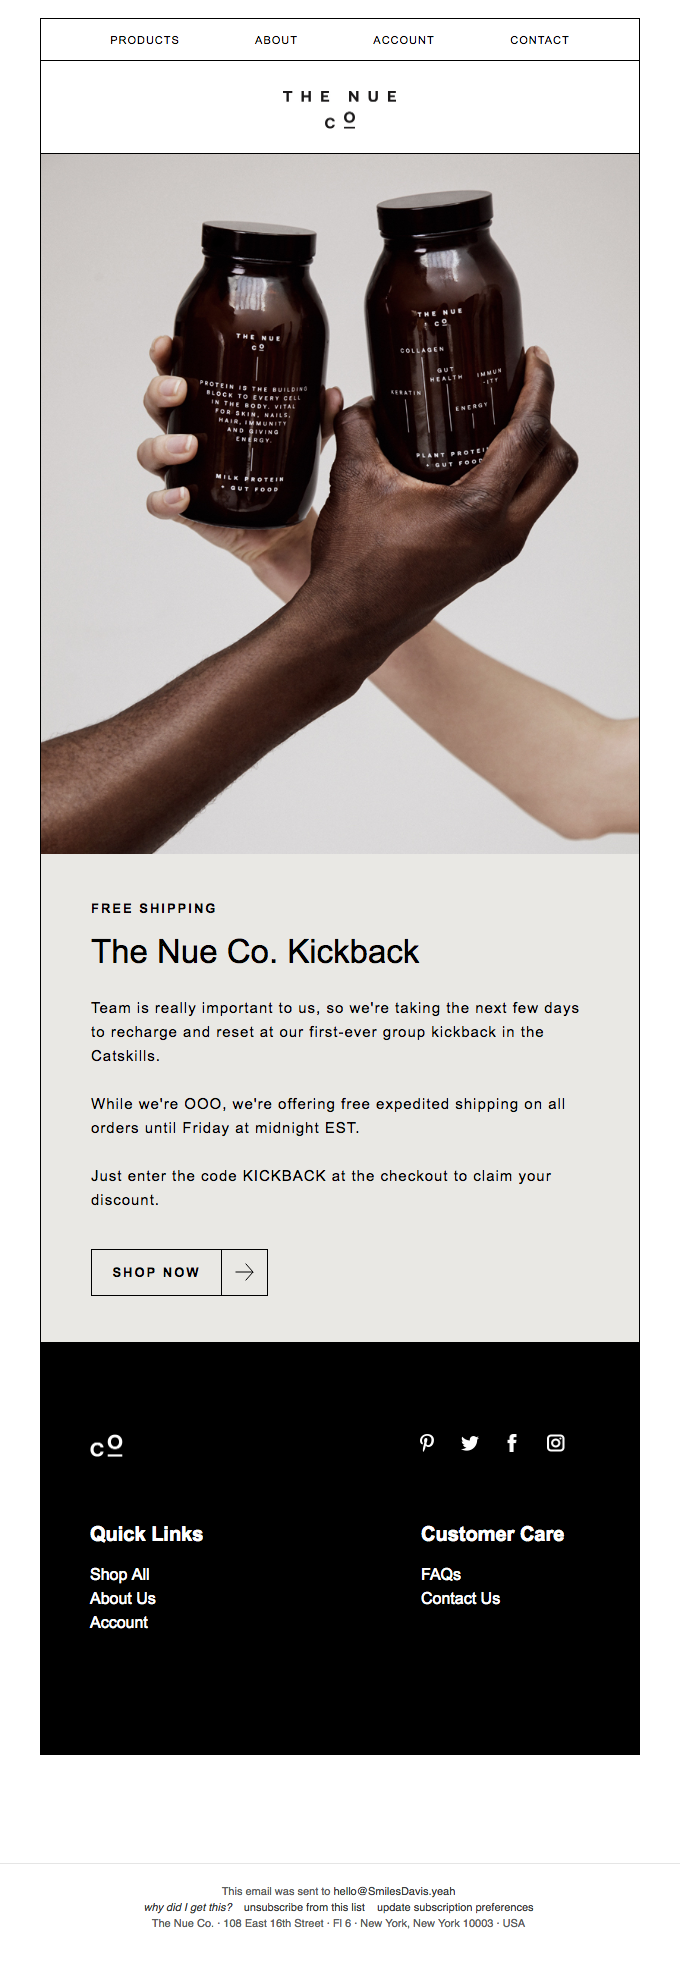 The Nue Co. Kickback Free Expedited Shipping